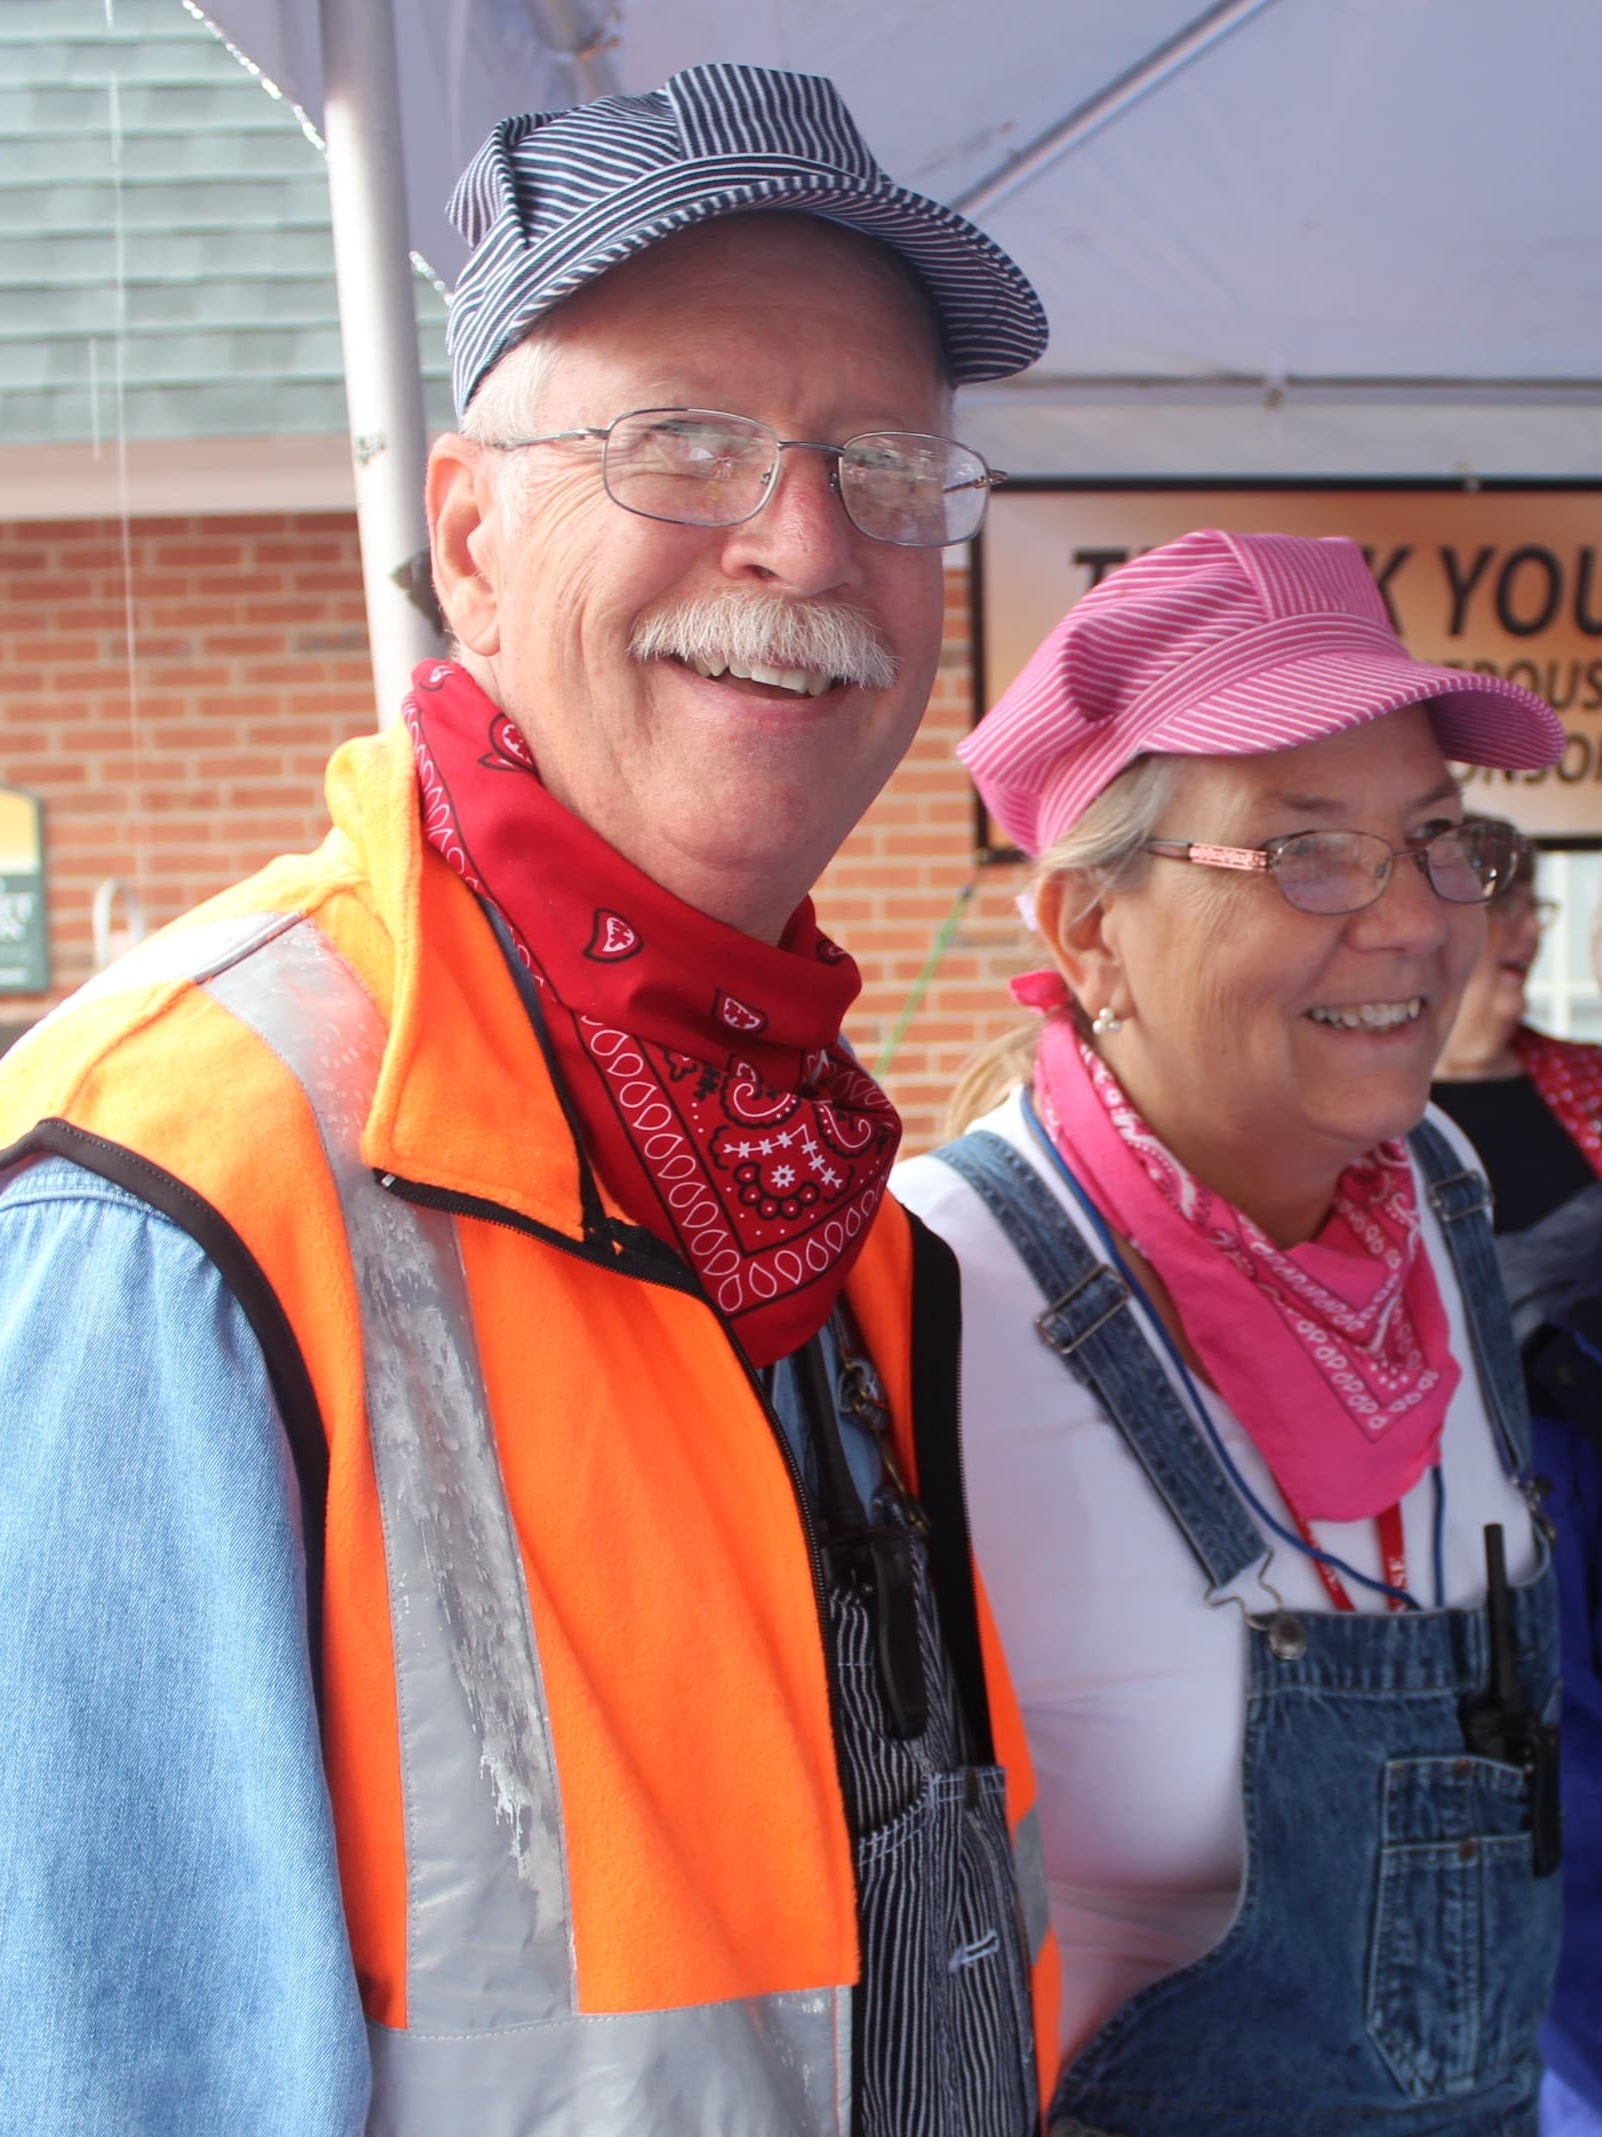 Bill and Cindy Gatewood volunteering at Ashland Train Day